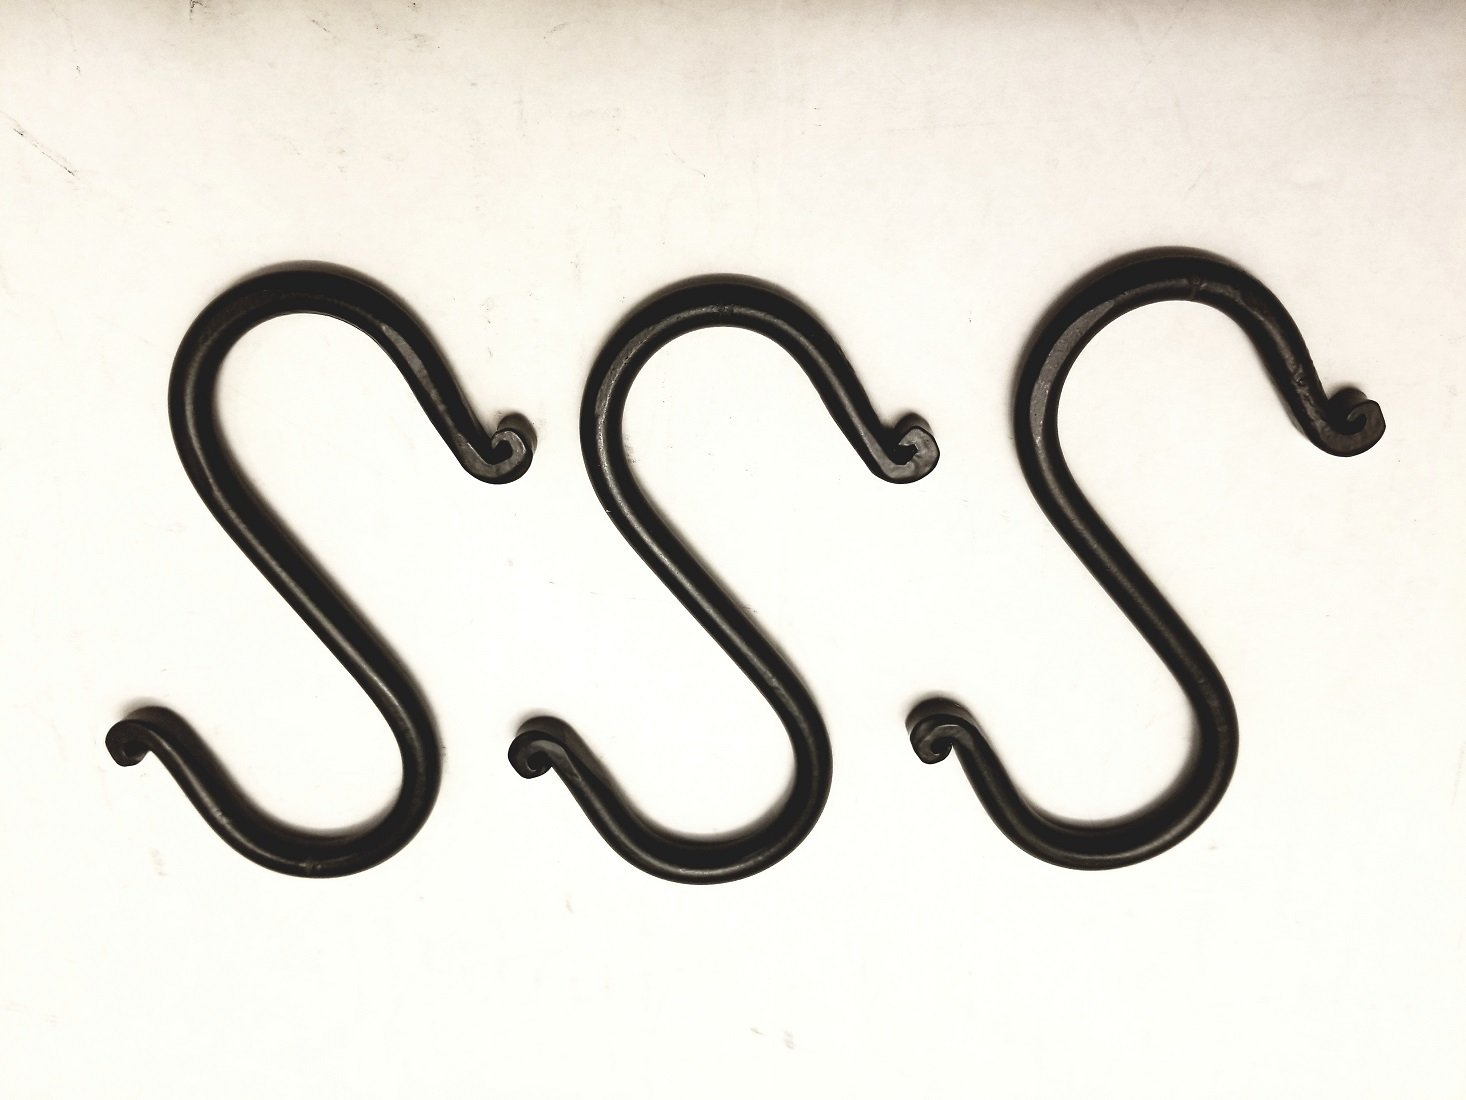 Wrought Iron Set Of 3 Small S'' Hooks - Each Hook is 3 3/4'' Long